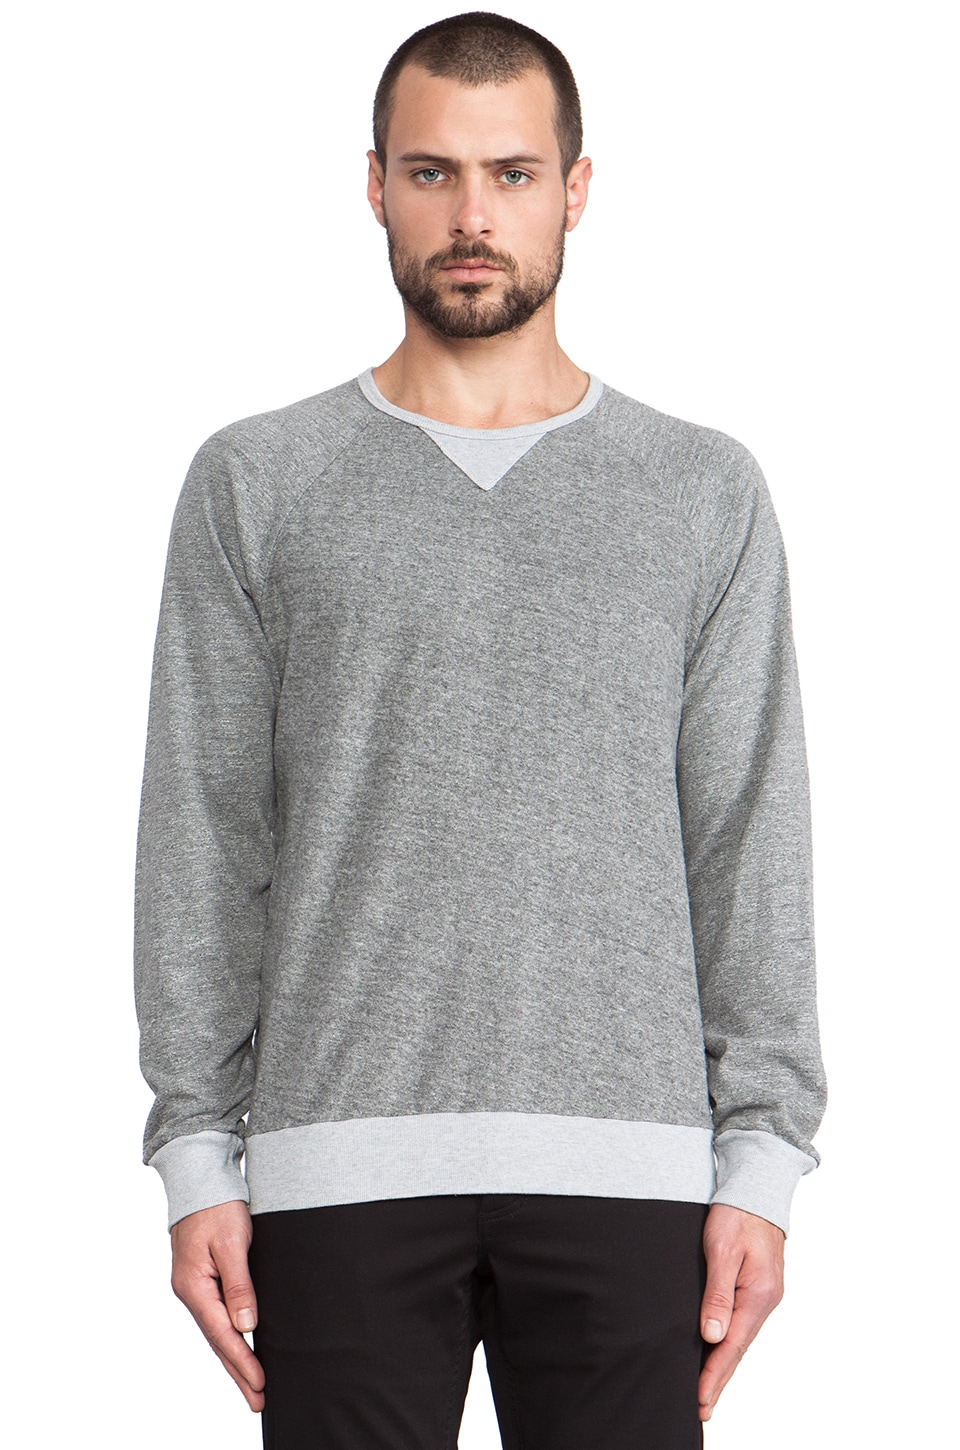 Velvet by Graham & Spencer Beau Sweatshirt in Heather Grey